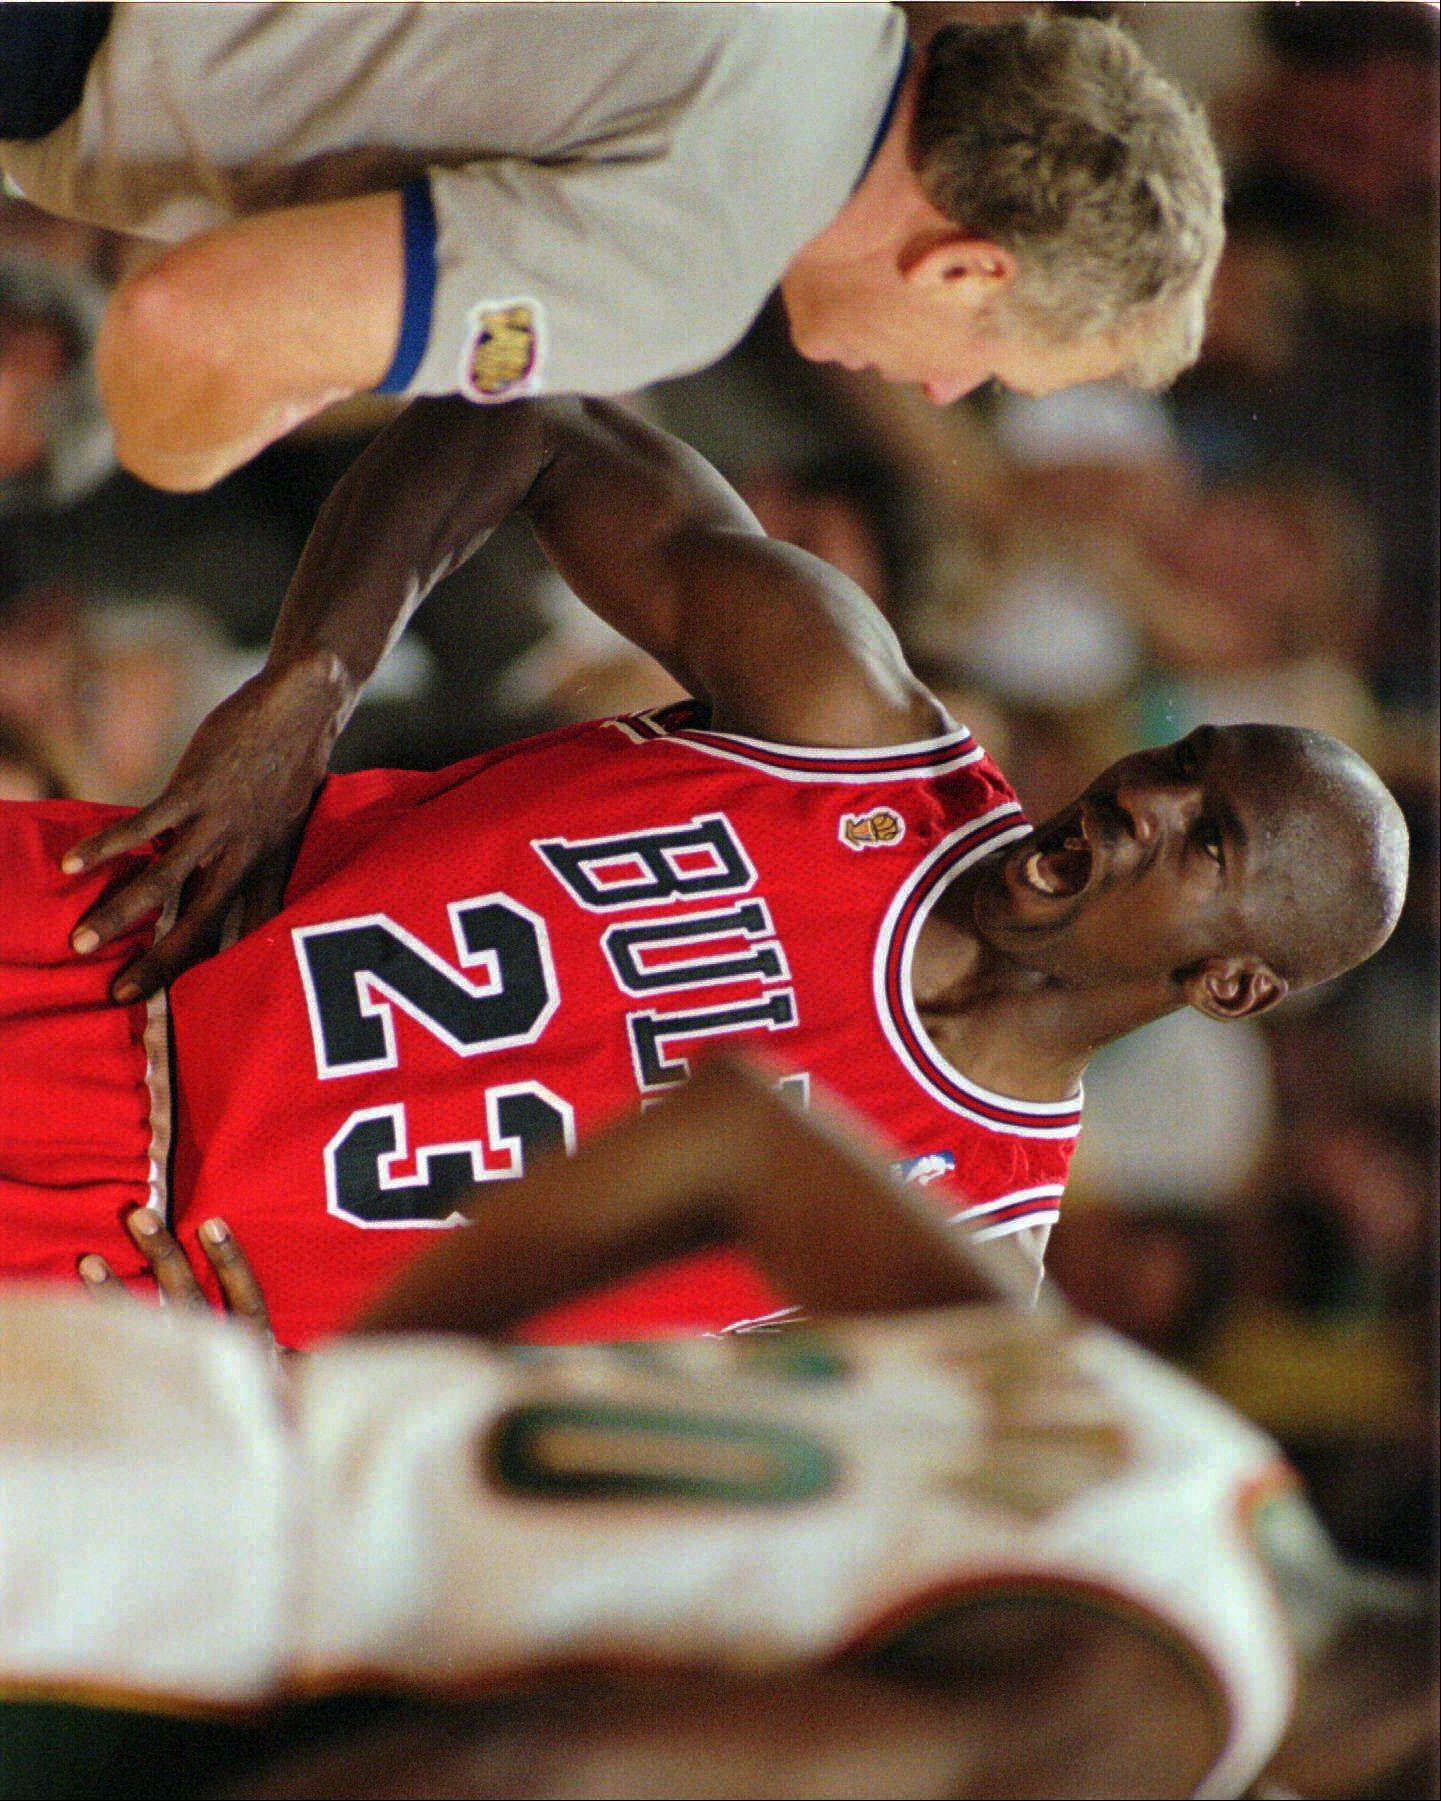 Michael Jordan has words with referee Mike Mathis, left, during the second quarter of Game 4 in the NBA Finals, Wednesday evening, June 12, 1996, in Seattle.